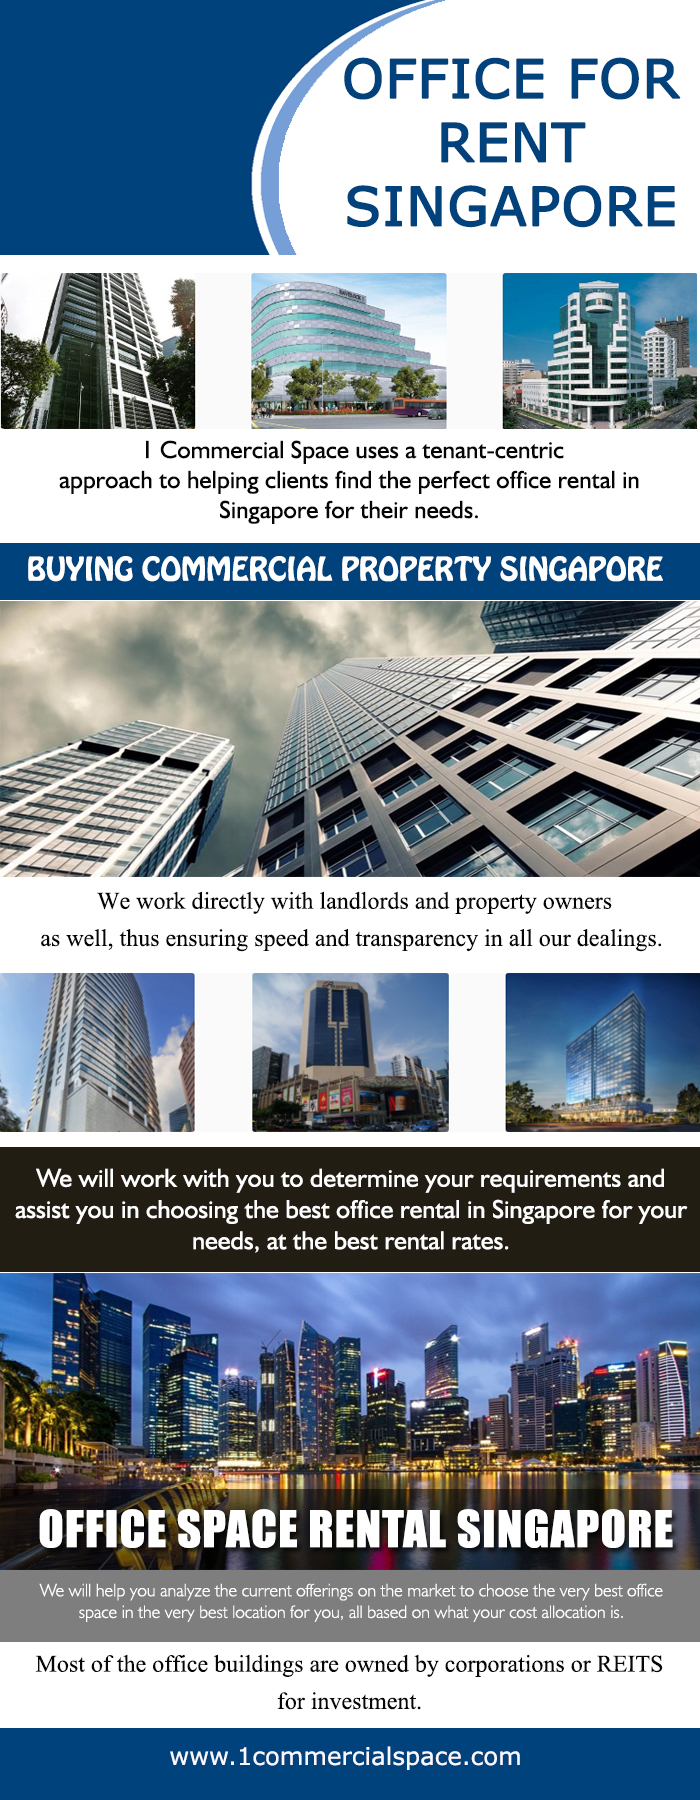 Listings For Sale At GSH Plaza Singapore